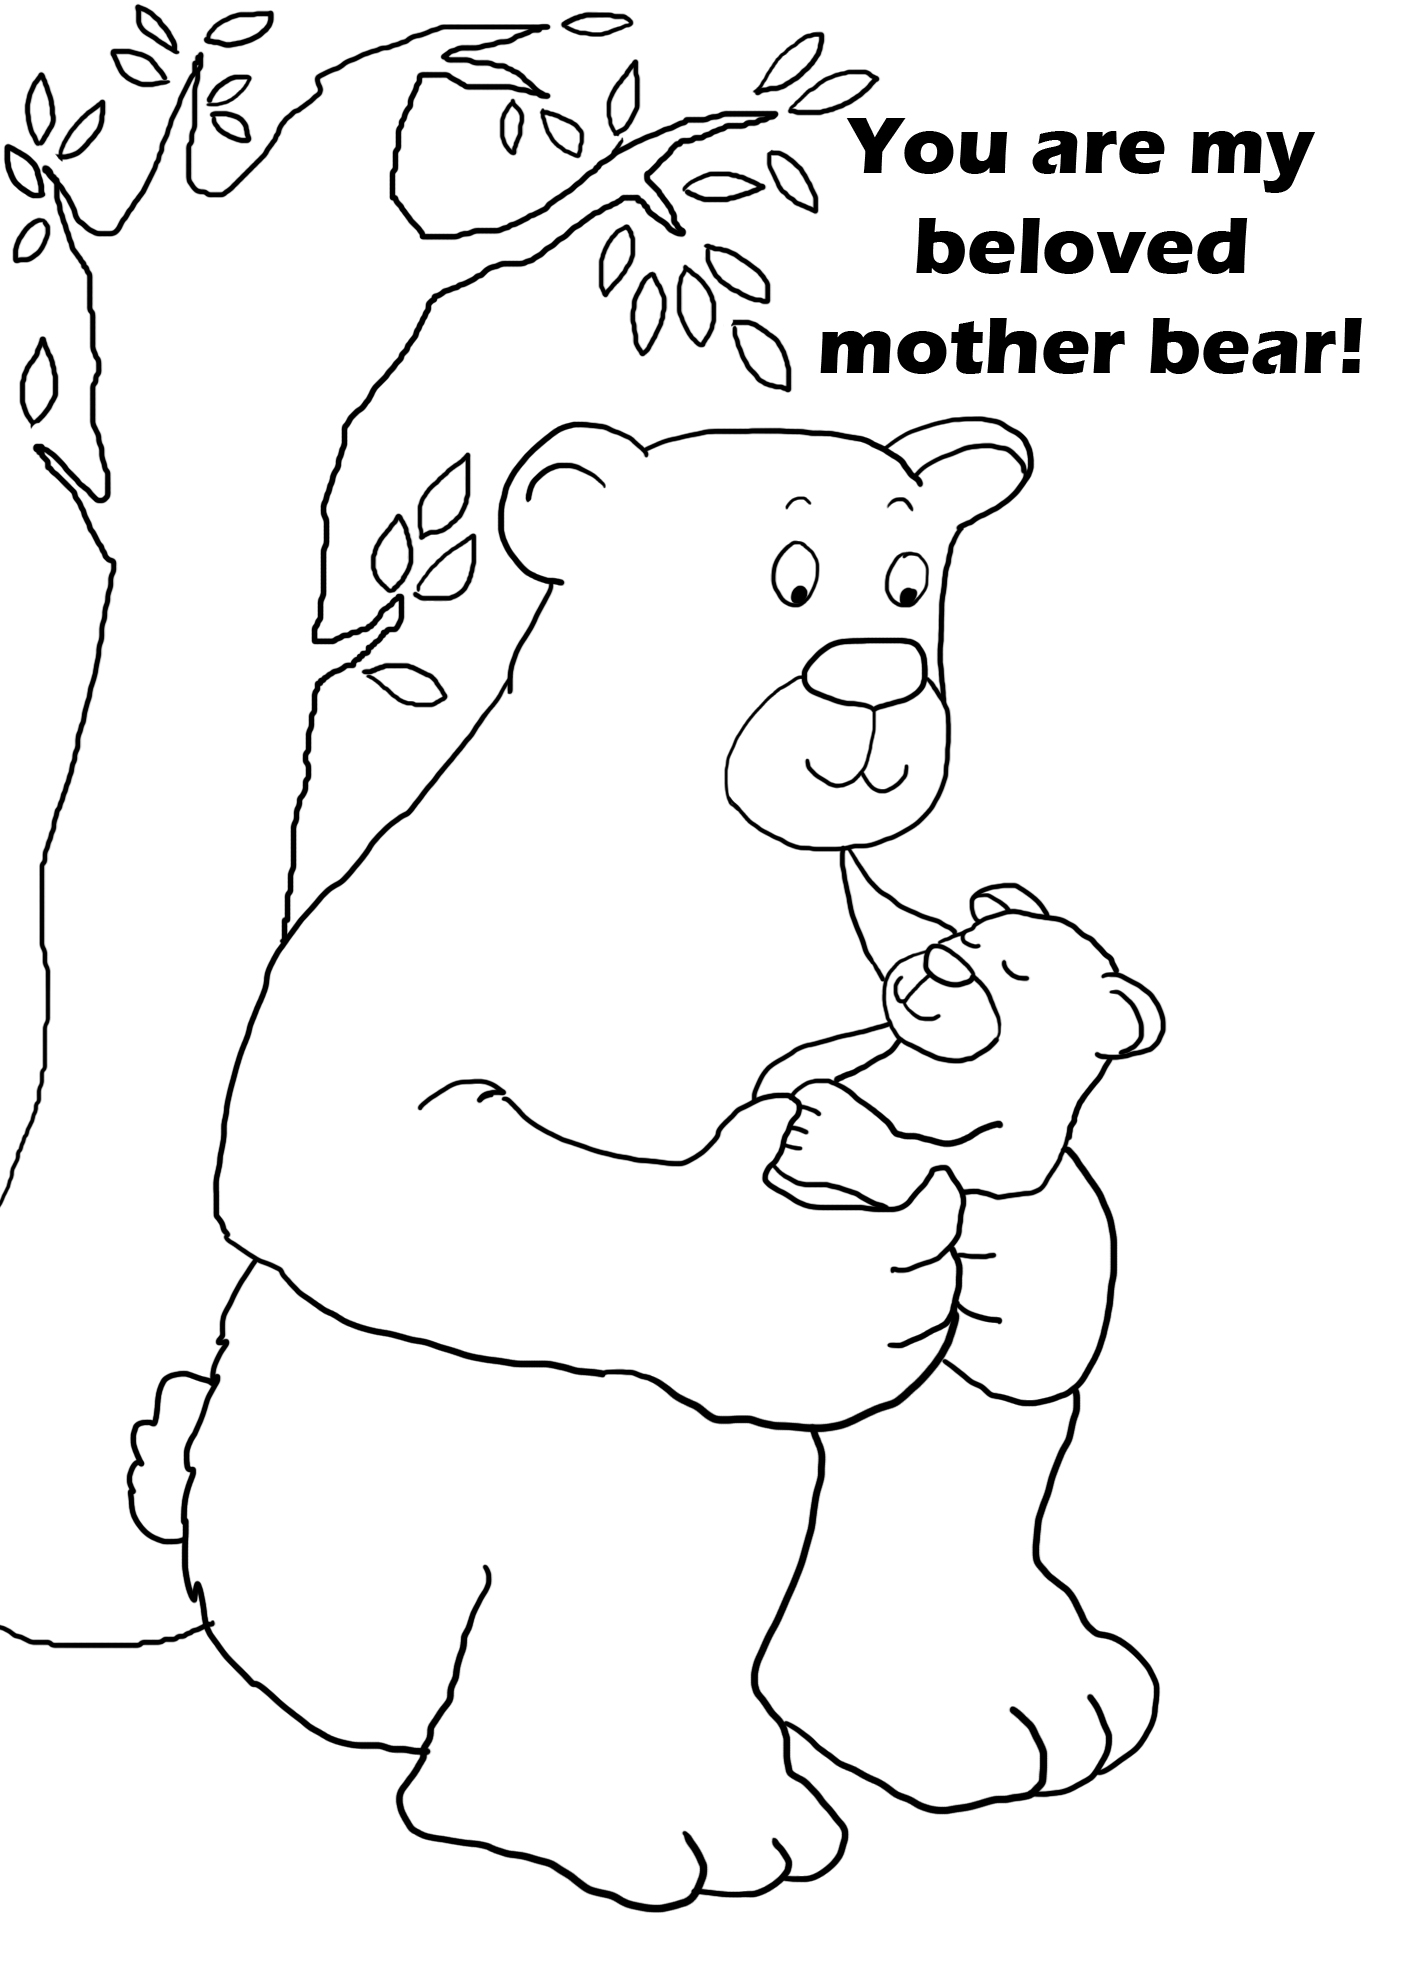 mother's day coloring with mother bear